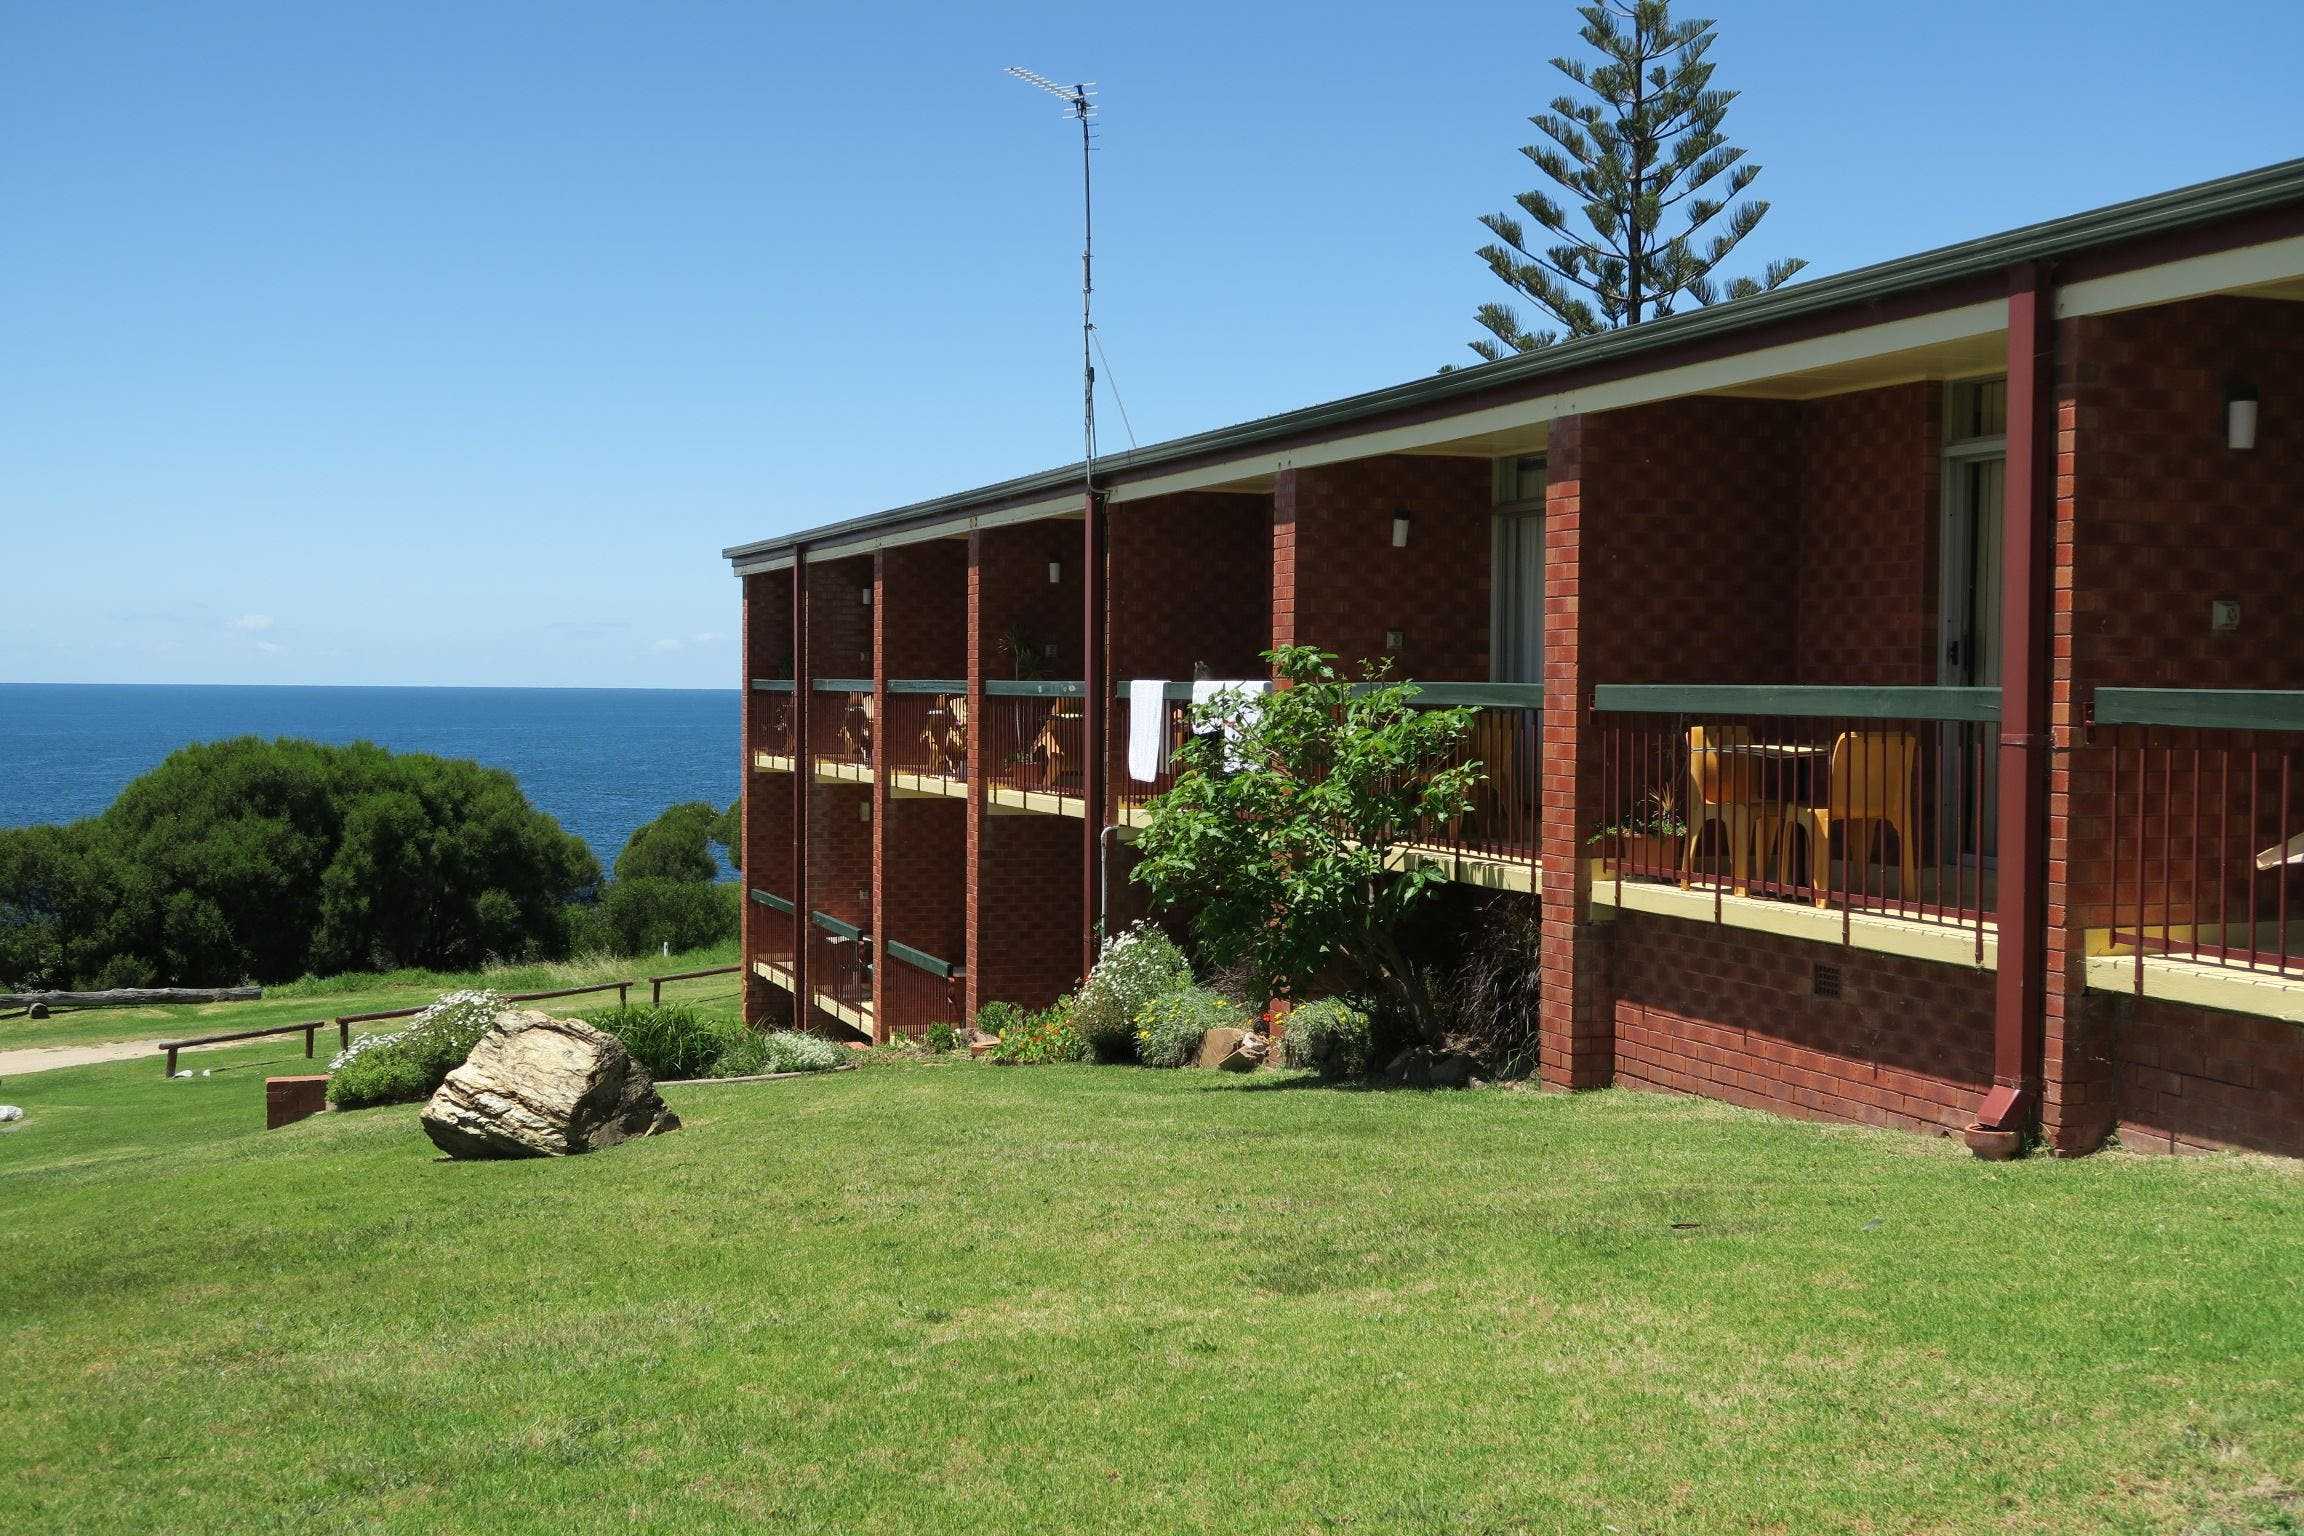 Tathra Hotel - Motel - Accommodation Mermaid Beach